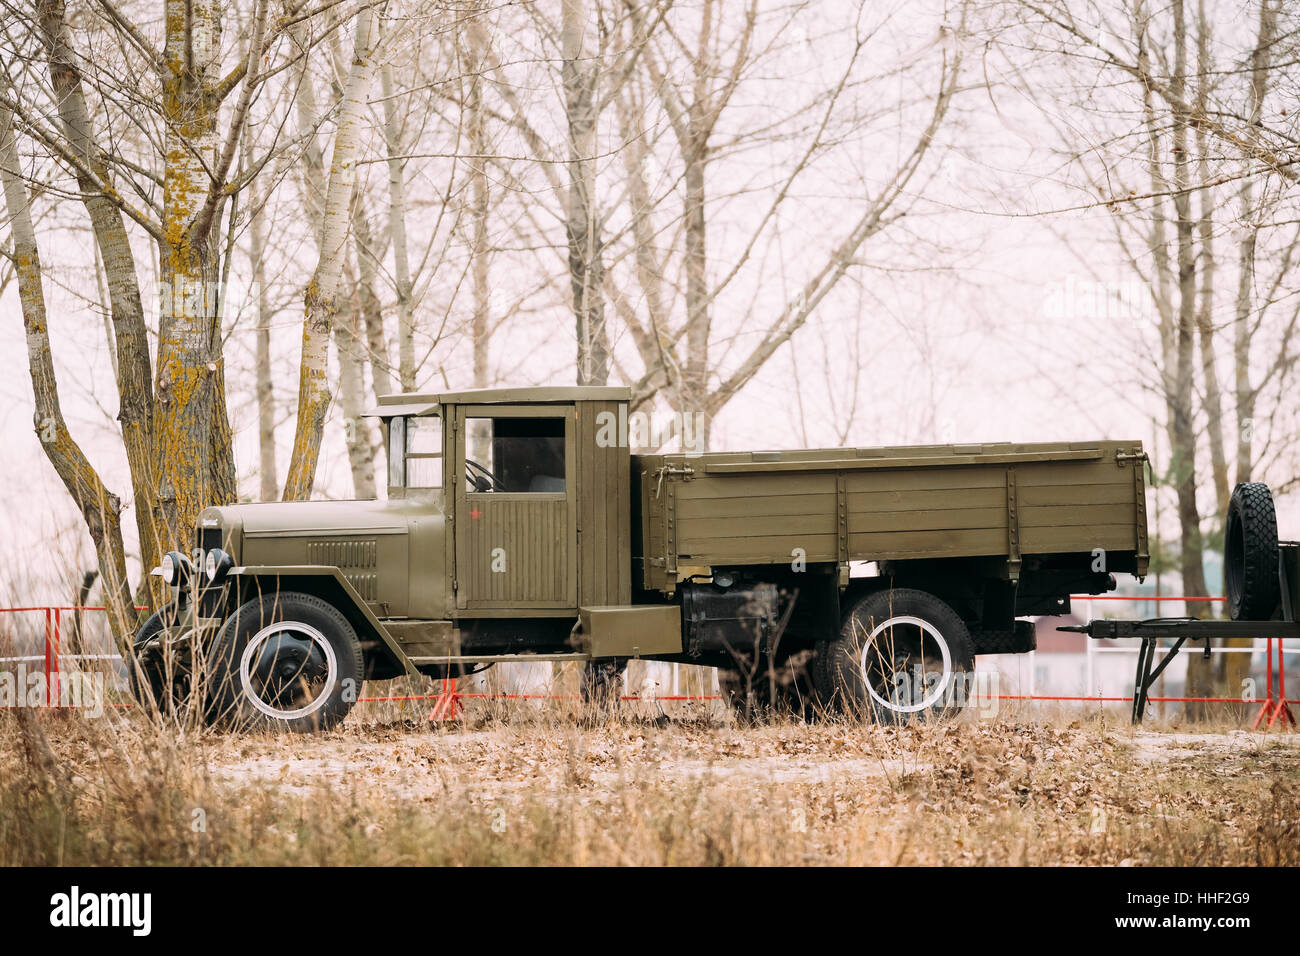 Old Soviet Russian Truck In Stock Photos & Old Soviet Russian Truck on